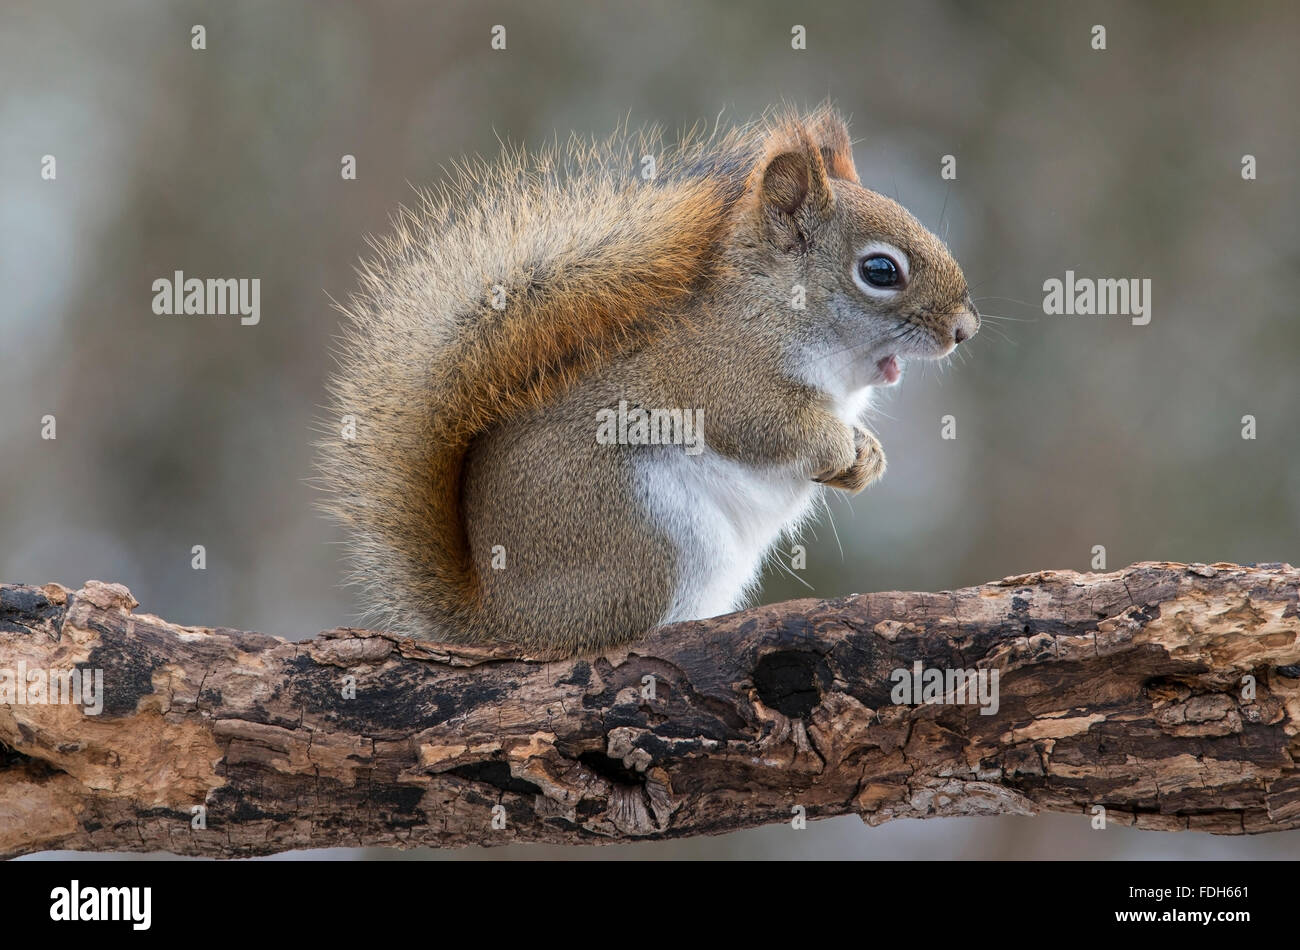 Eastern Red Squirrel making sounds (Tamiasciurus or Sciurus hudsonicus) E North America - Stock Image